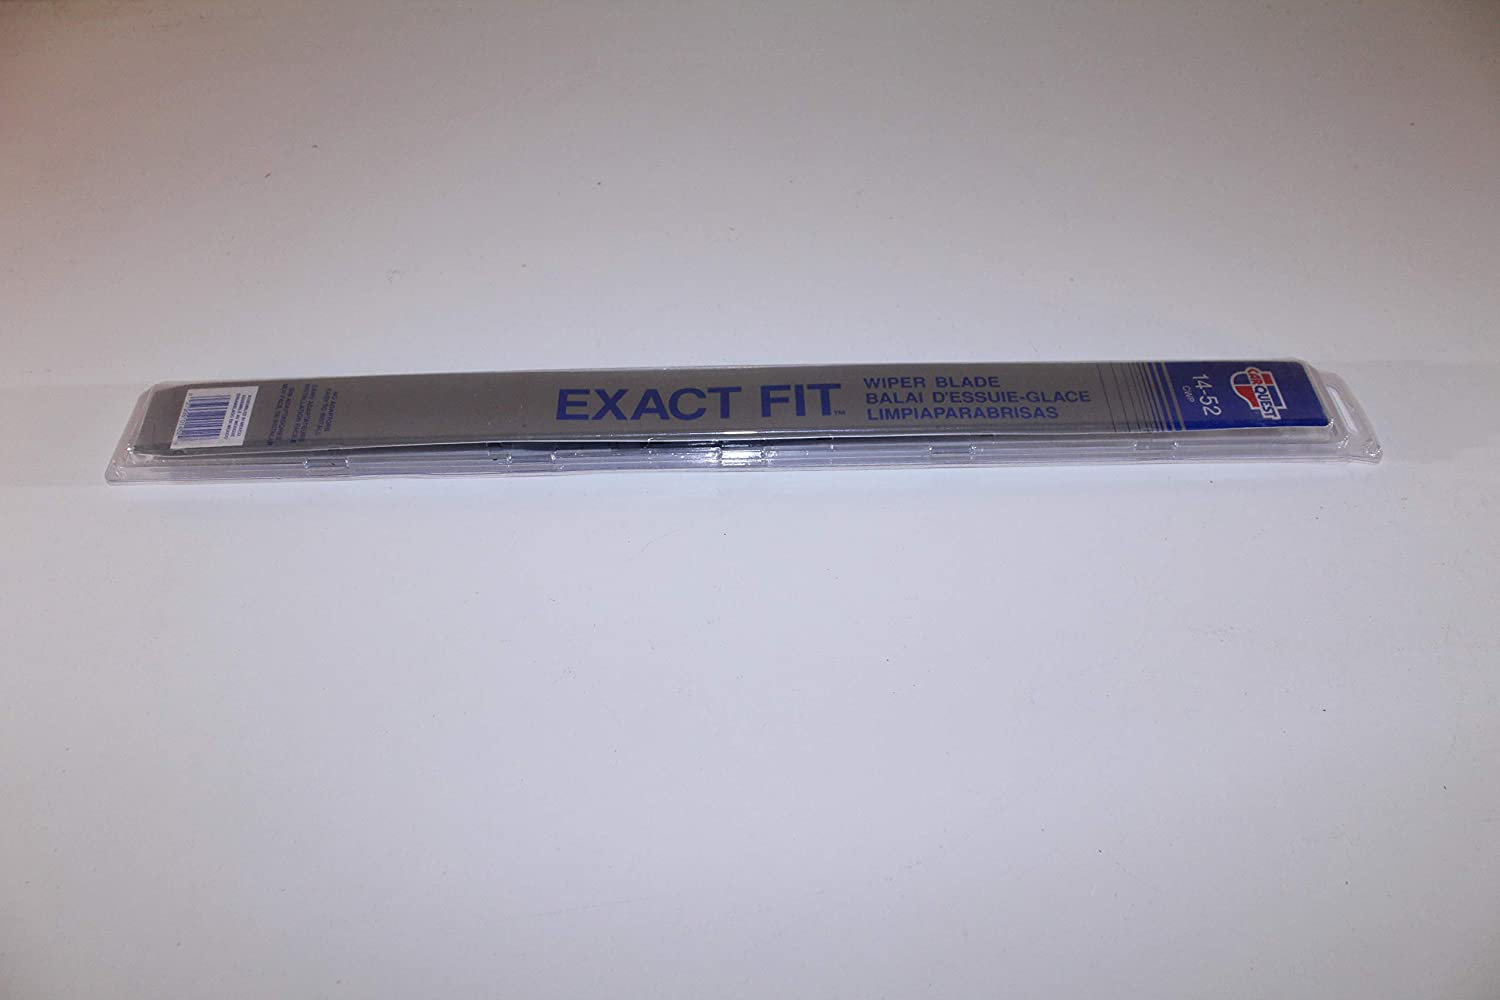 Amazon.com: CarQuest 14-52 Exact Fit Wiper Blade: Automotive